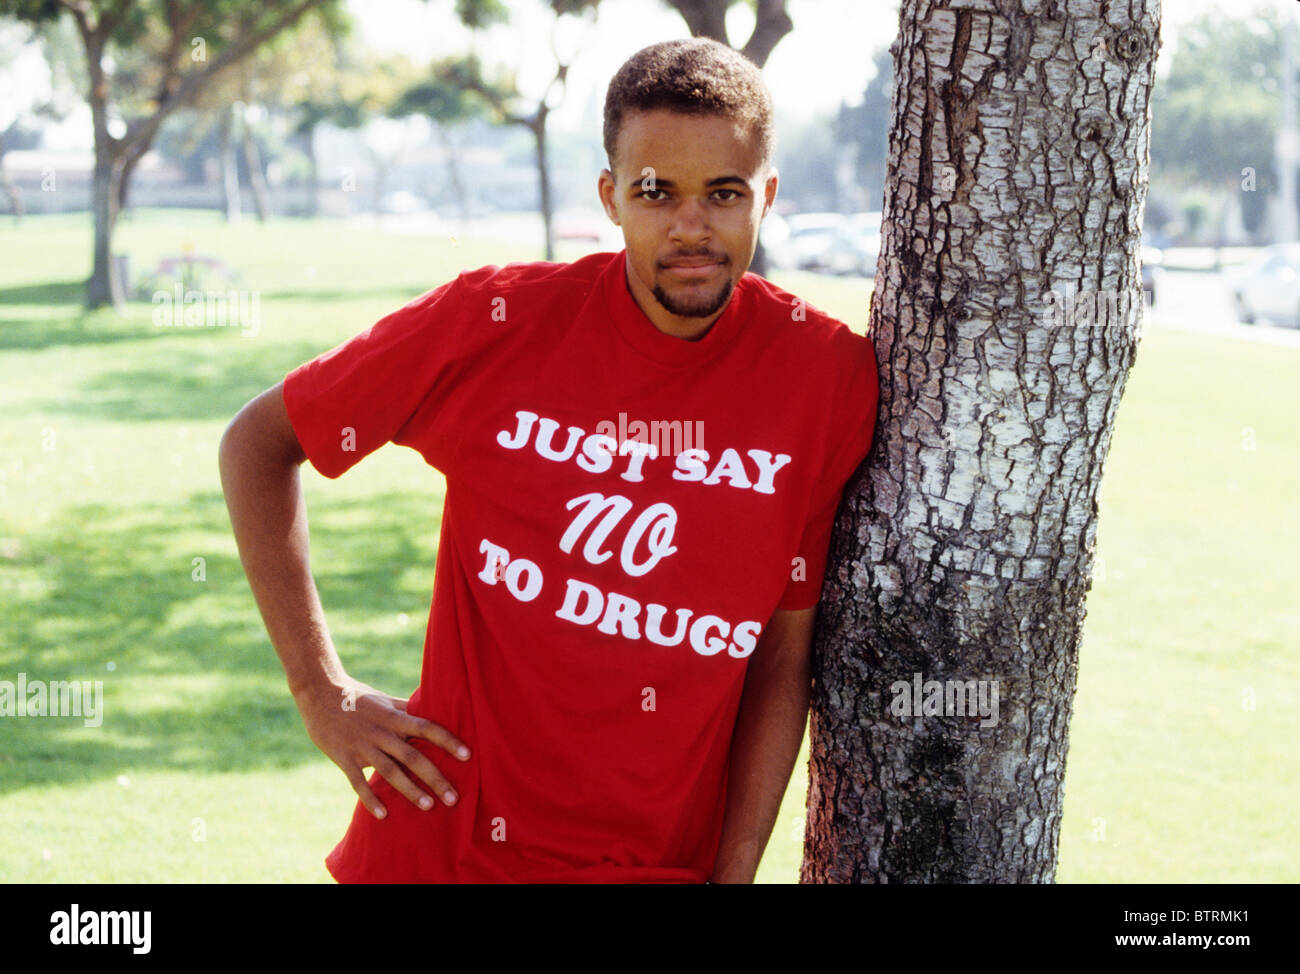 Black Boy Teen Male Just Say No To Drugs Shirt Red Wear Support Fight Stock Photo Royalty Free